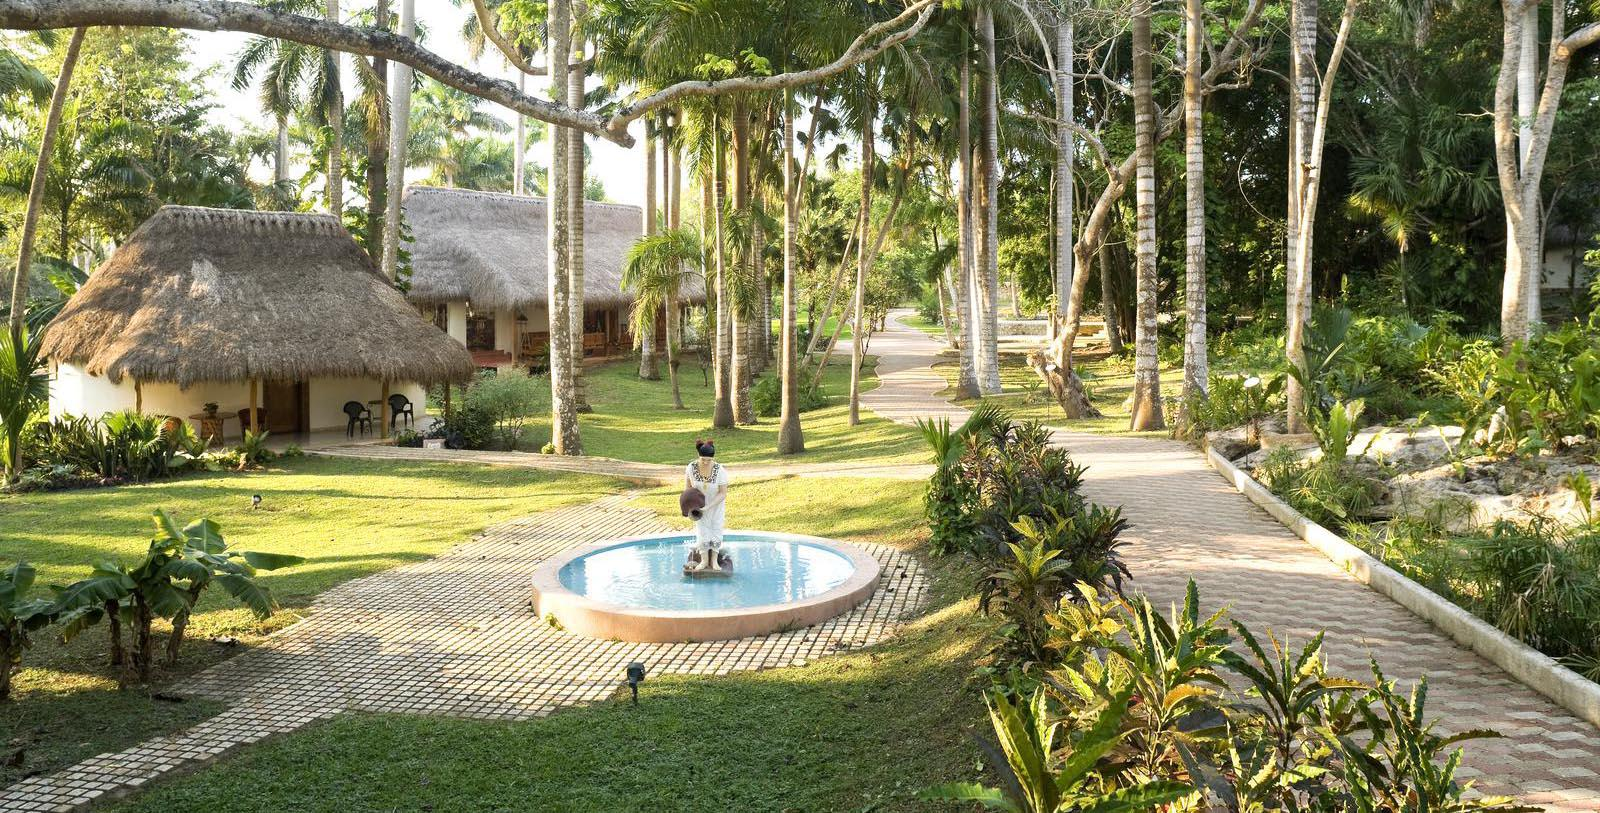 Gardens of the Mayaland Hotel & Bungalows in Yucatan, Mexico.